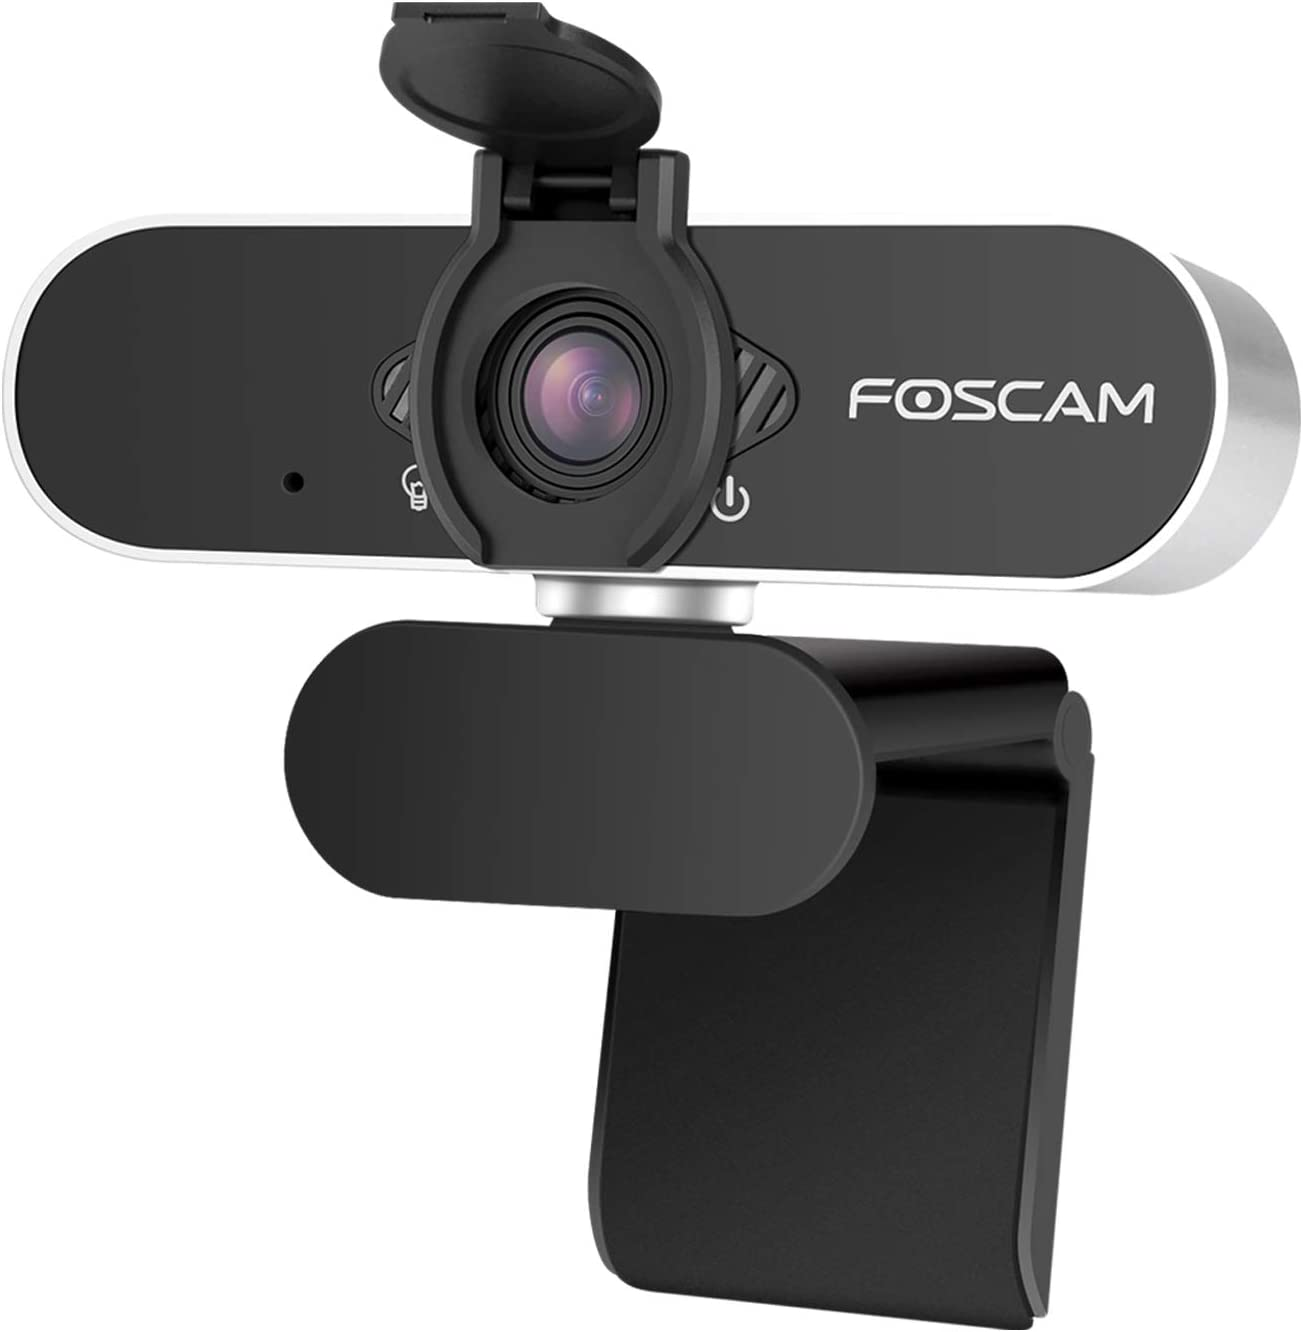 Webcam with Microphone for Desktop Laptop, Foscam 1080P HD USB Streaming Web Cam for Windows Mac OS, Conference, Gaming, Courses, Flexible Mount, Privacy Cover Inlcuded, Business Grade